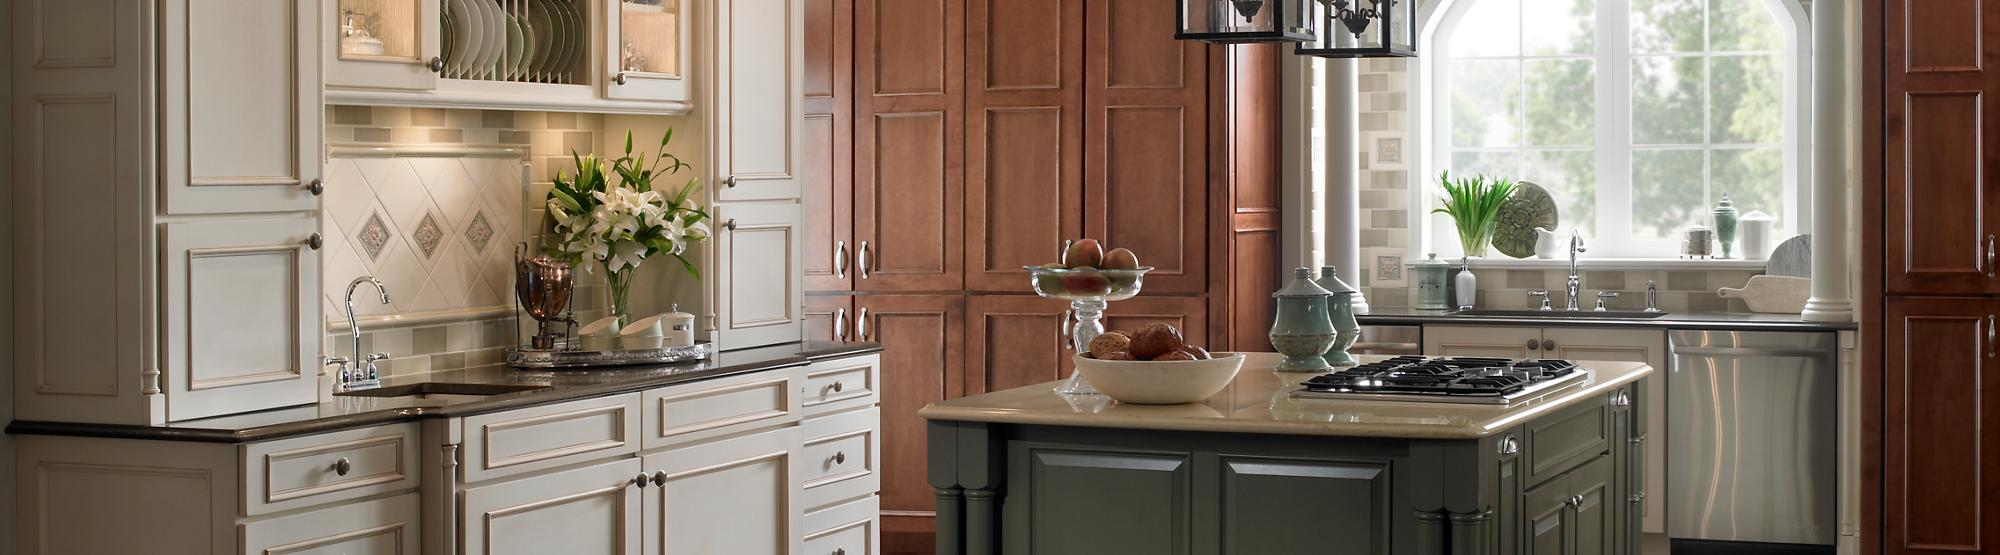 Windsor Maple Morel Raw Umber Glaze and Highlight with Heirloom Distressing and Amaretto; Island Shown in Sheffield Maple Seagrass Dry Brush